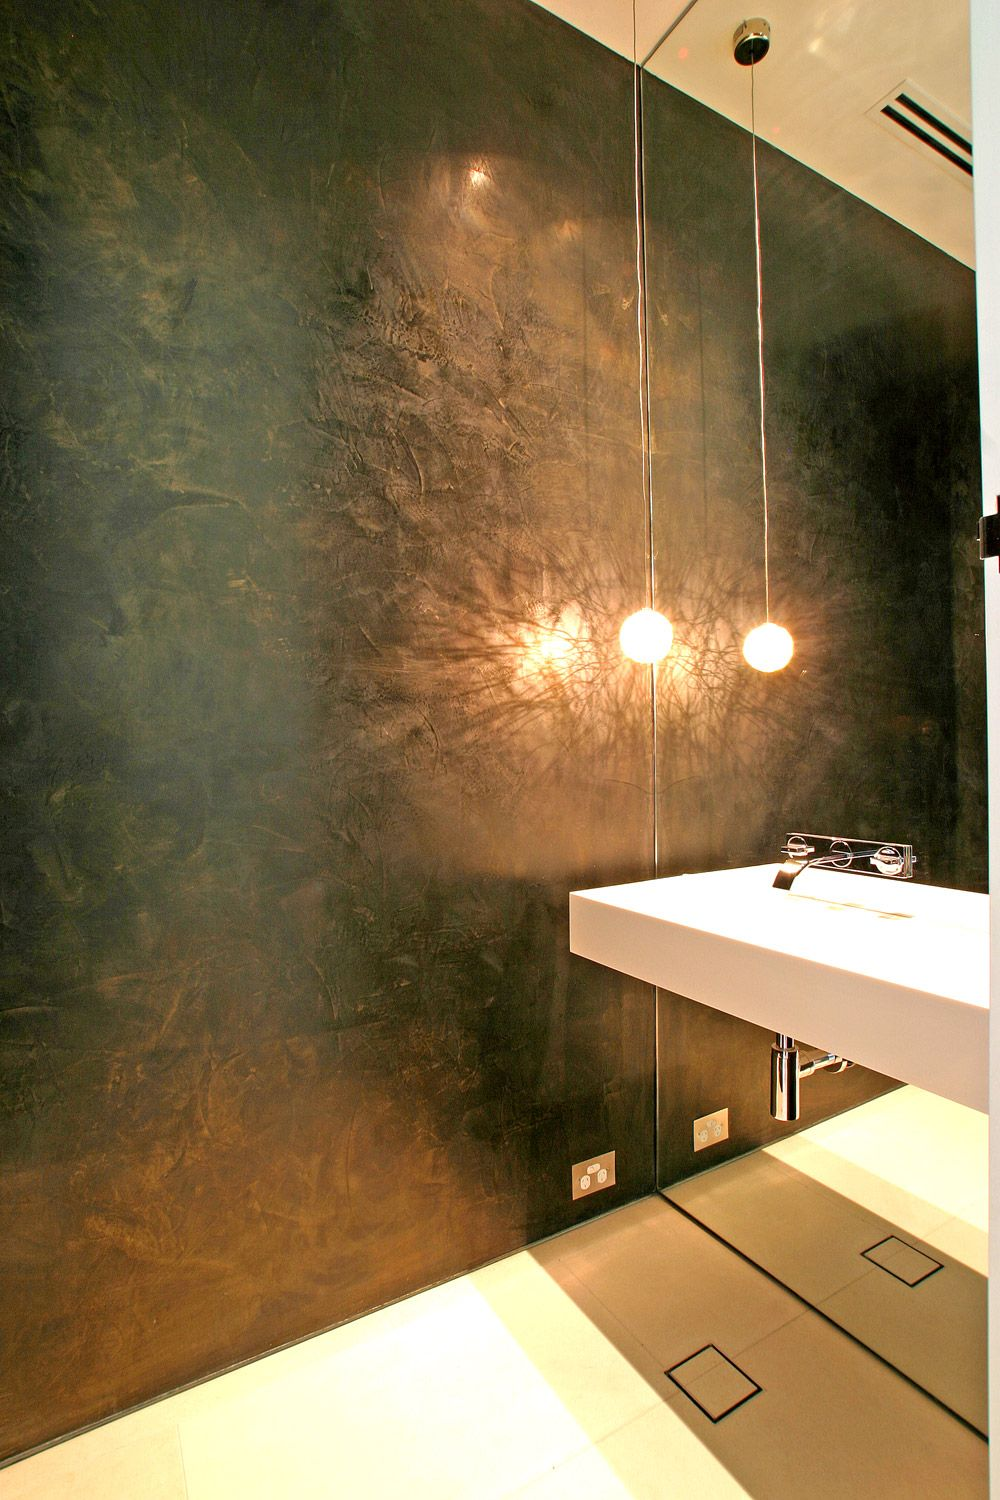 Venetian Plaster And Other Modern Plaster Walls: Polished Plaster - Google Search …